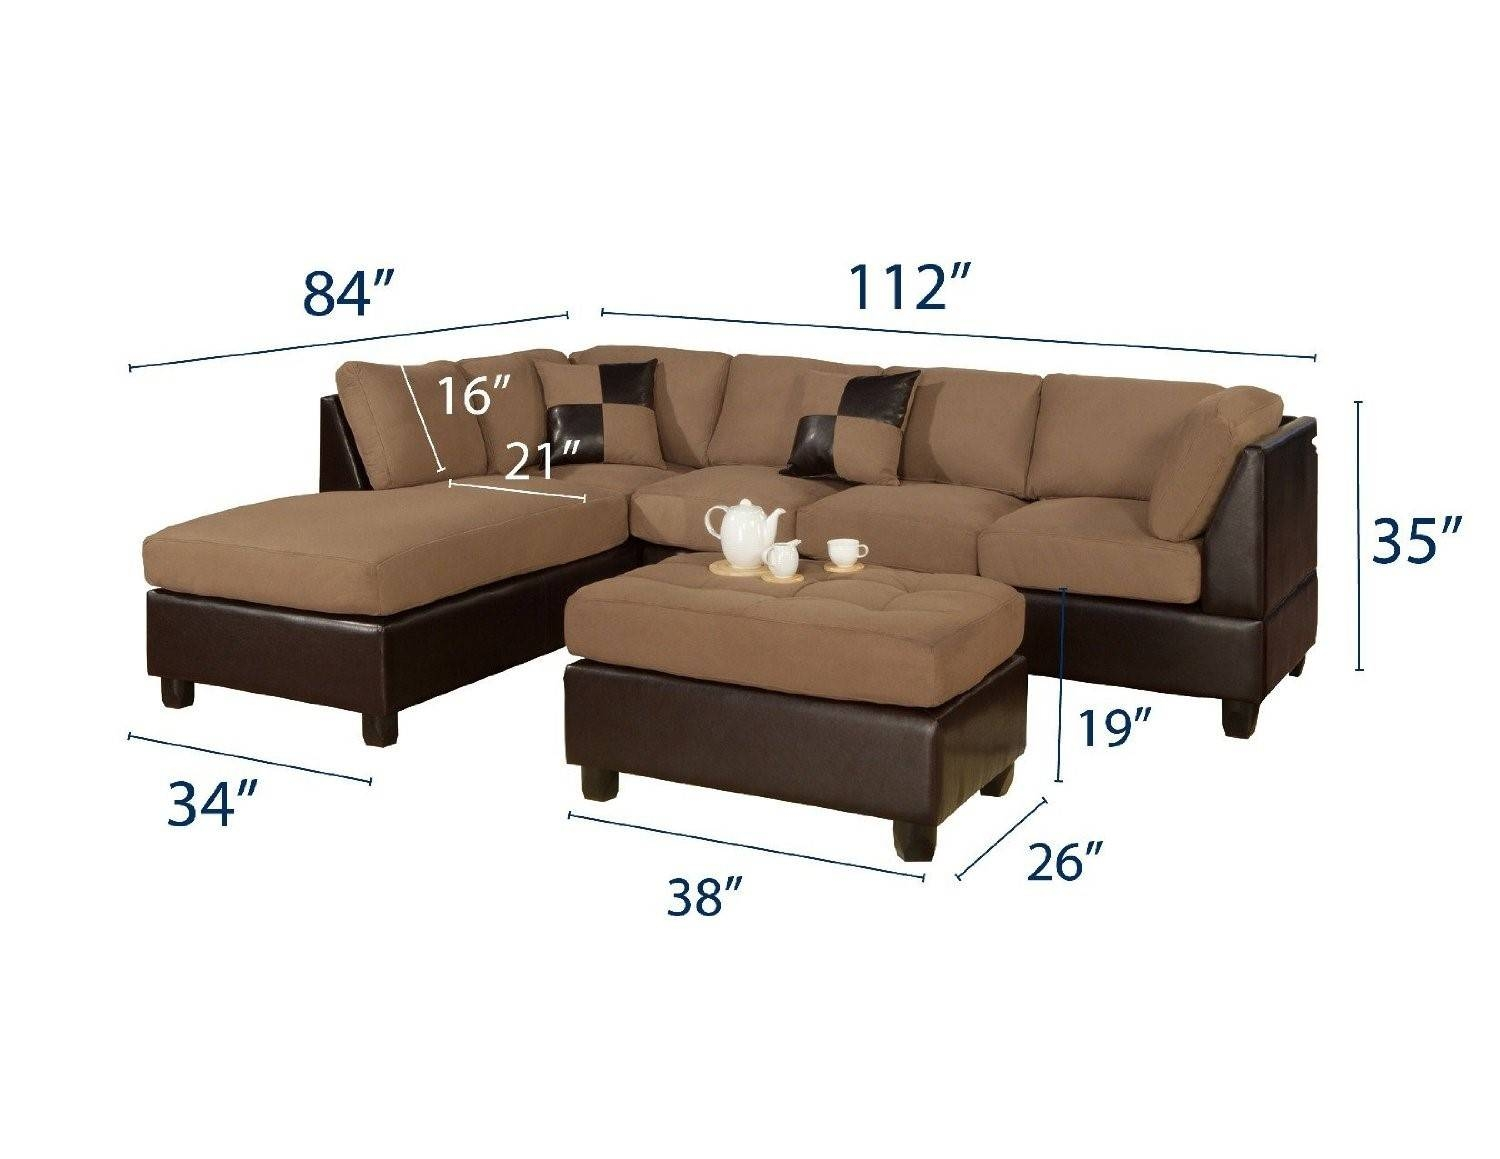 Sectional Sofa Craigslist With Ideas Design 30949 | Kengire in Craigslist Sectional Sofa (Image 20 of 30)